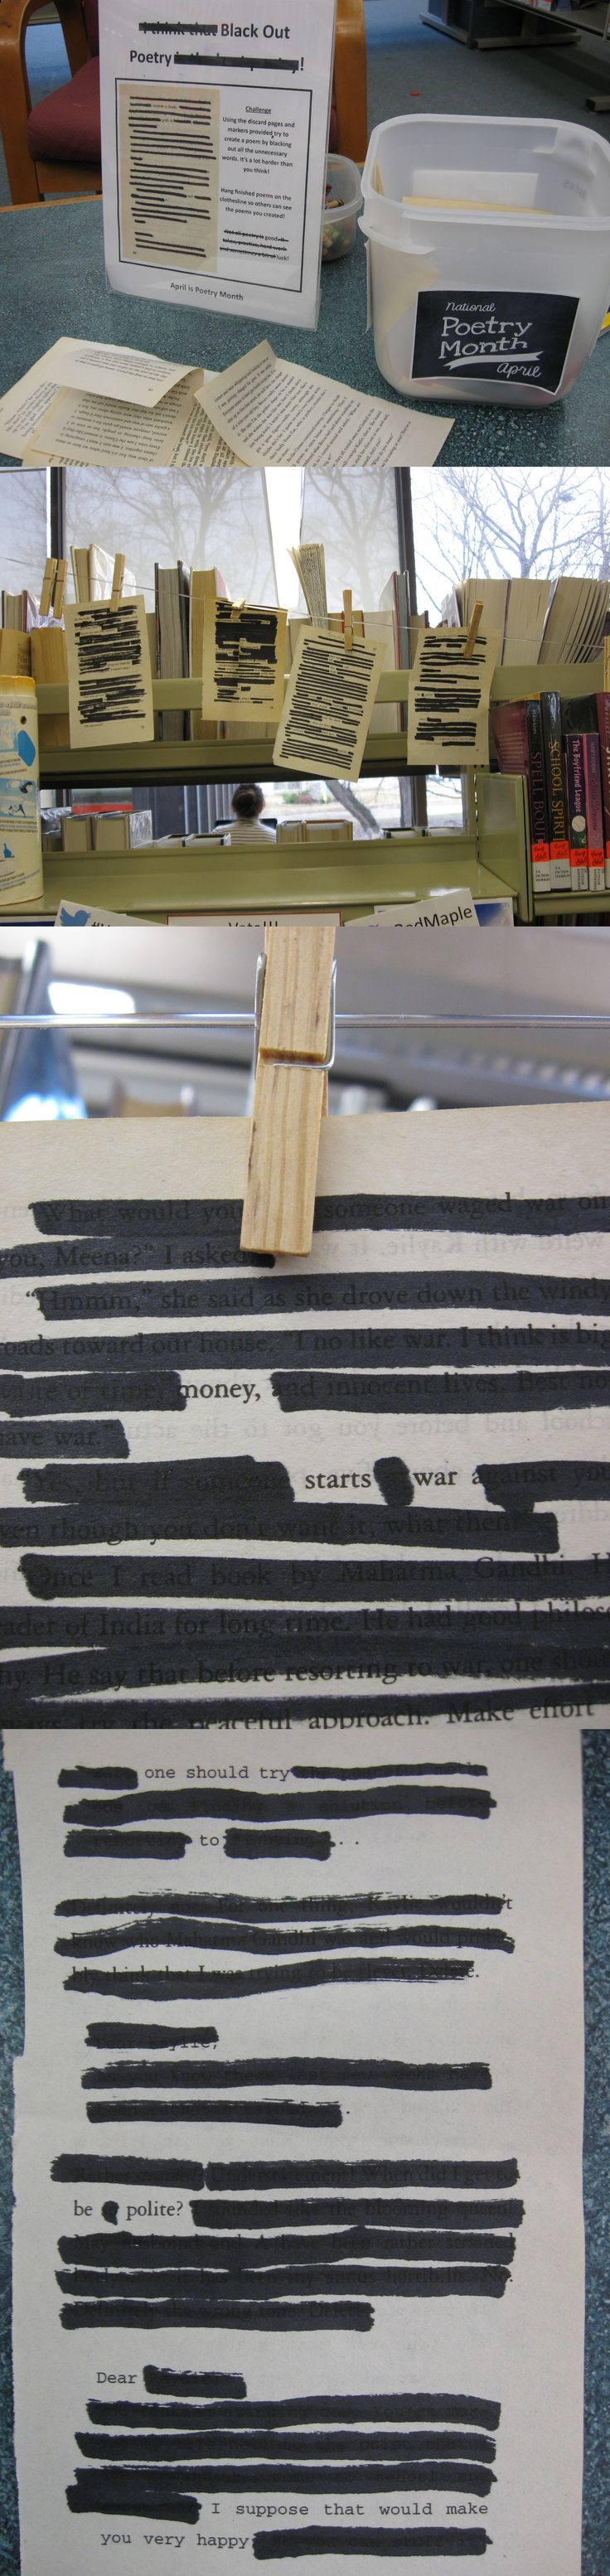 Black Out Poetry teen passive program at the Sault Ste. Marie Public Library April 2014.